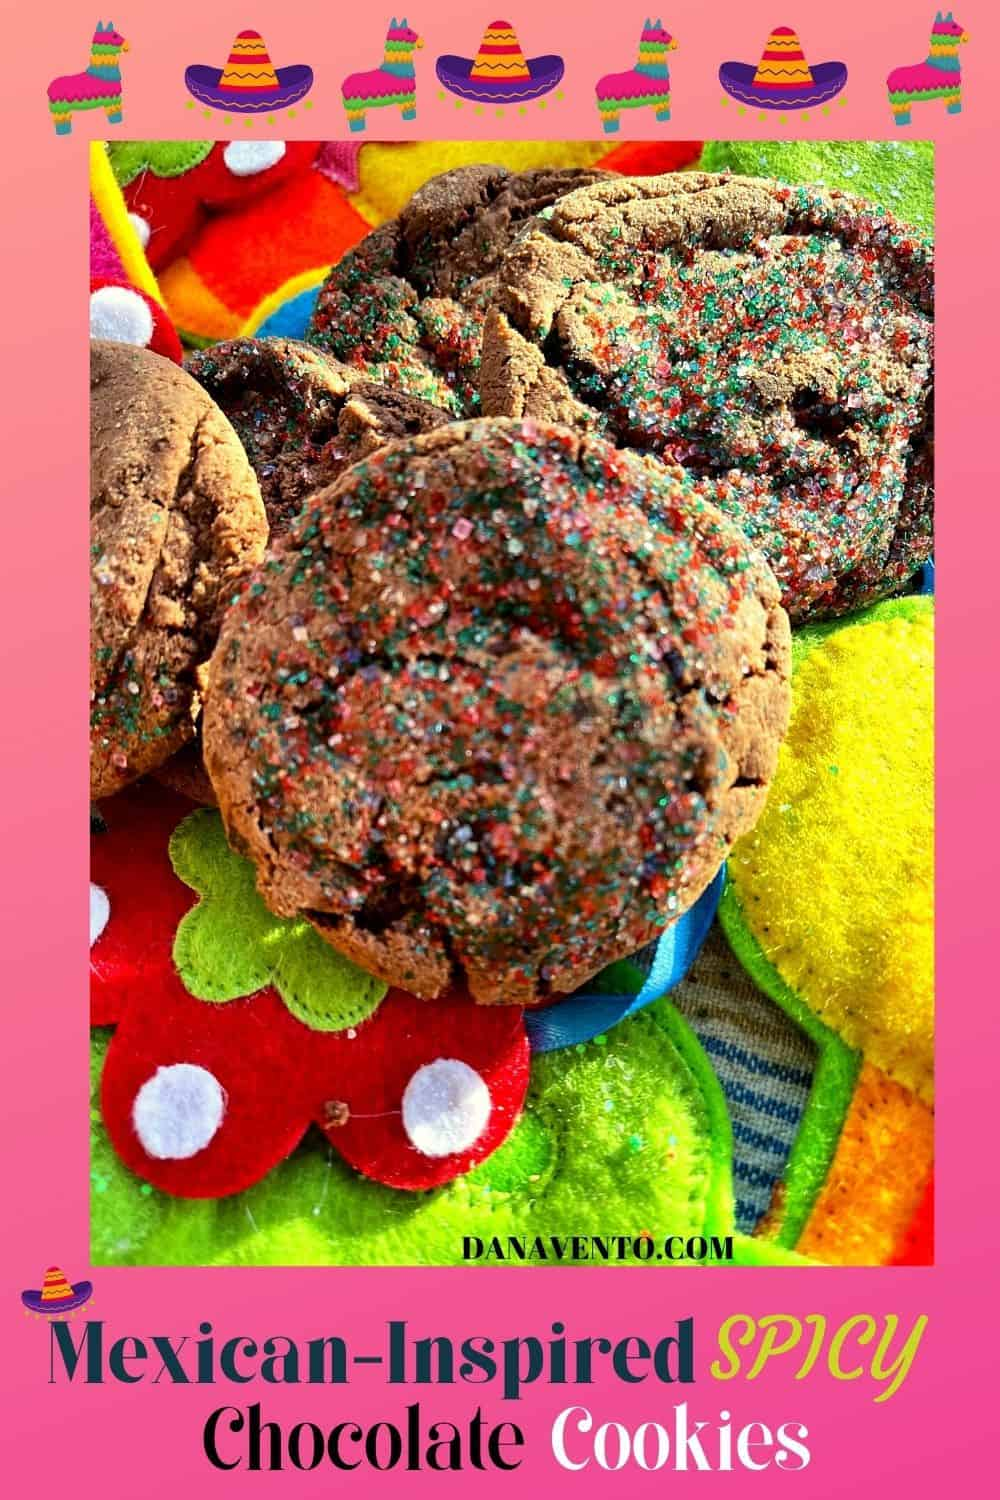 Mexican-Inspired Spicy Chocolate Cookies up close with fiesta background